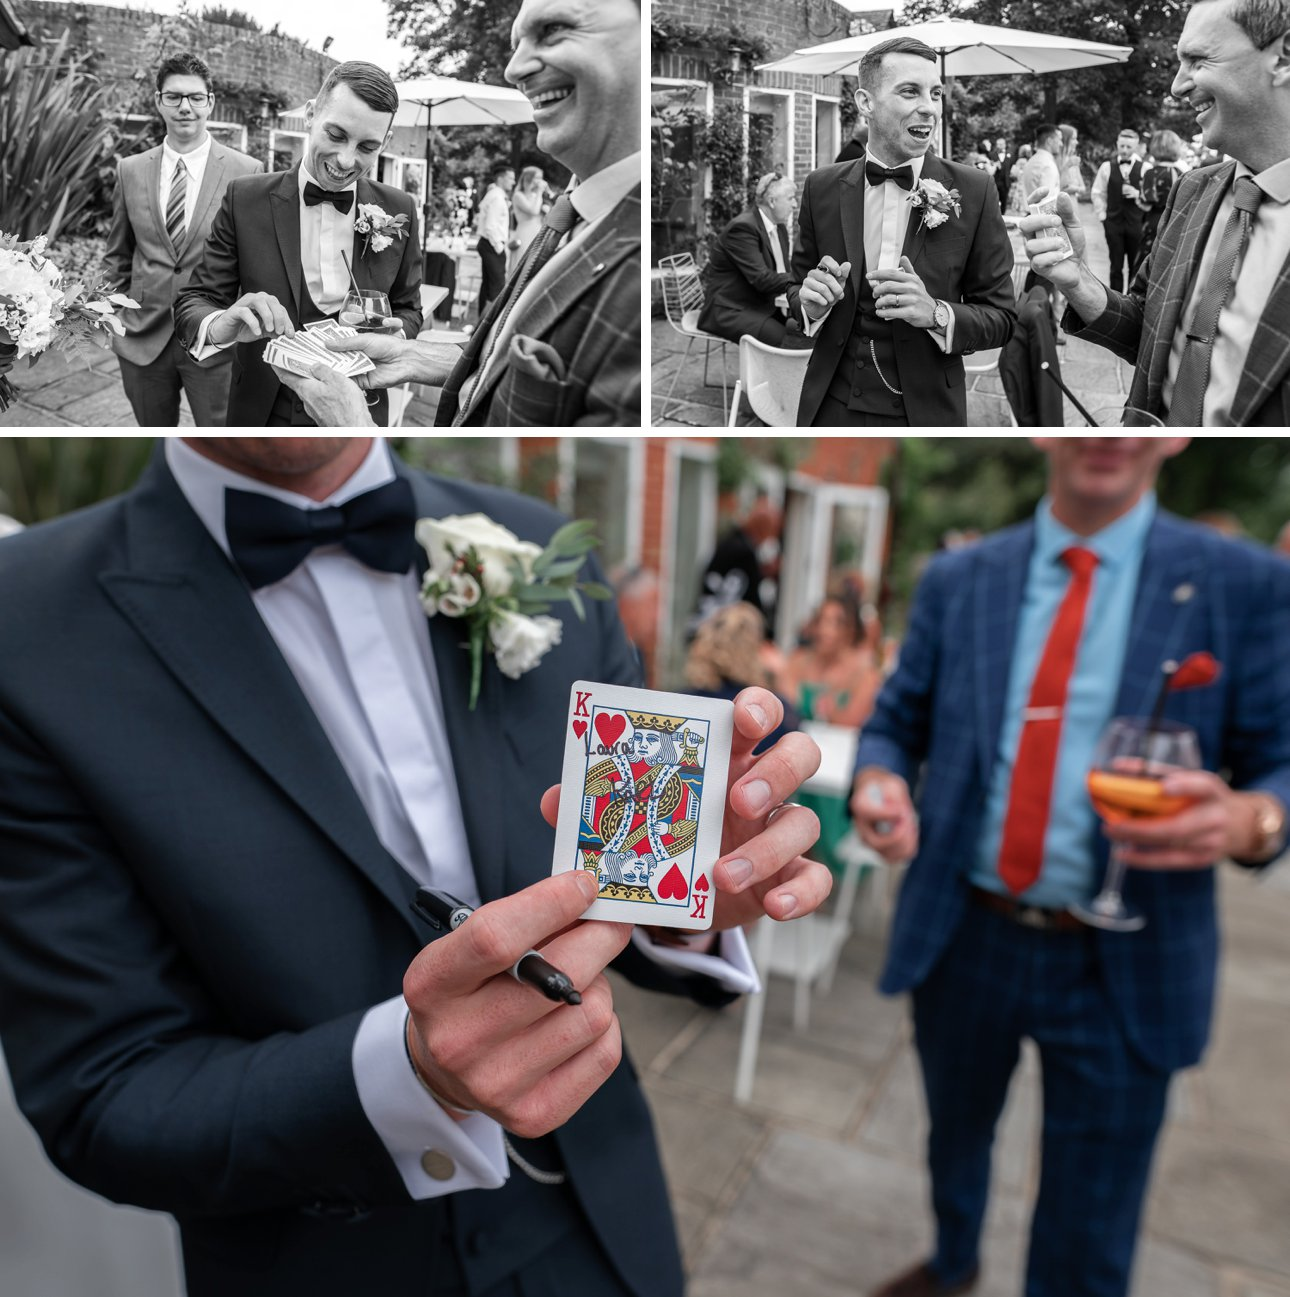 A magician amazes the groom with his sleight of hand at Stoke Place Slough.